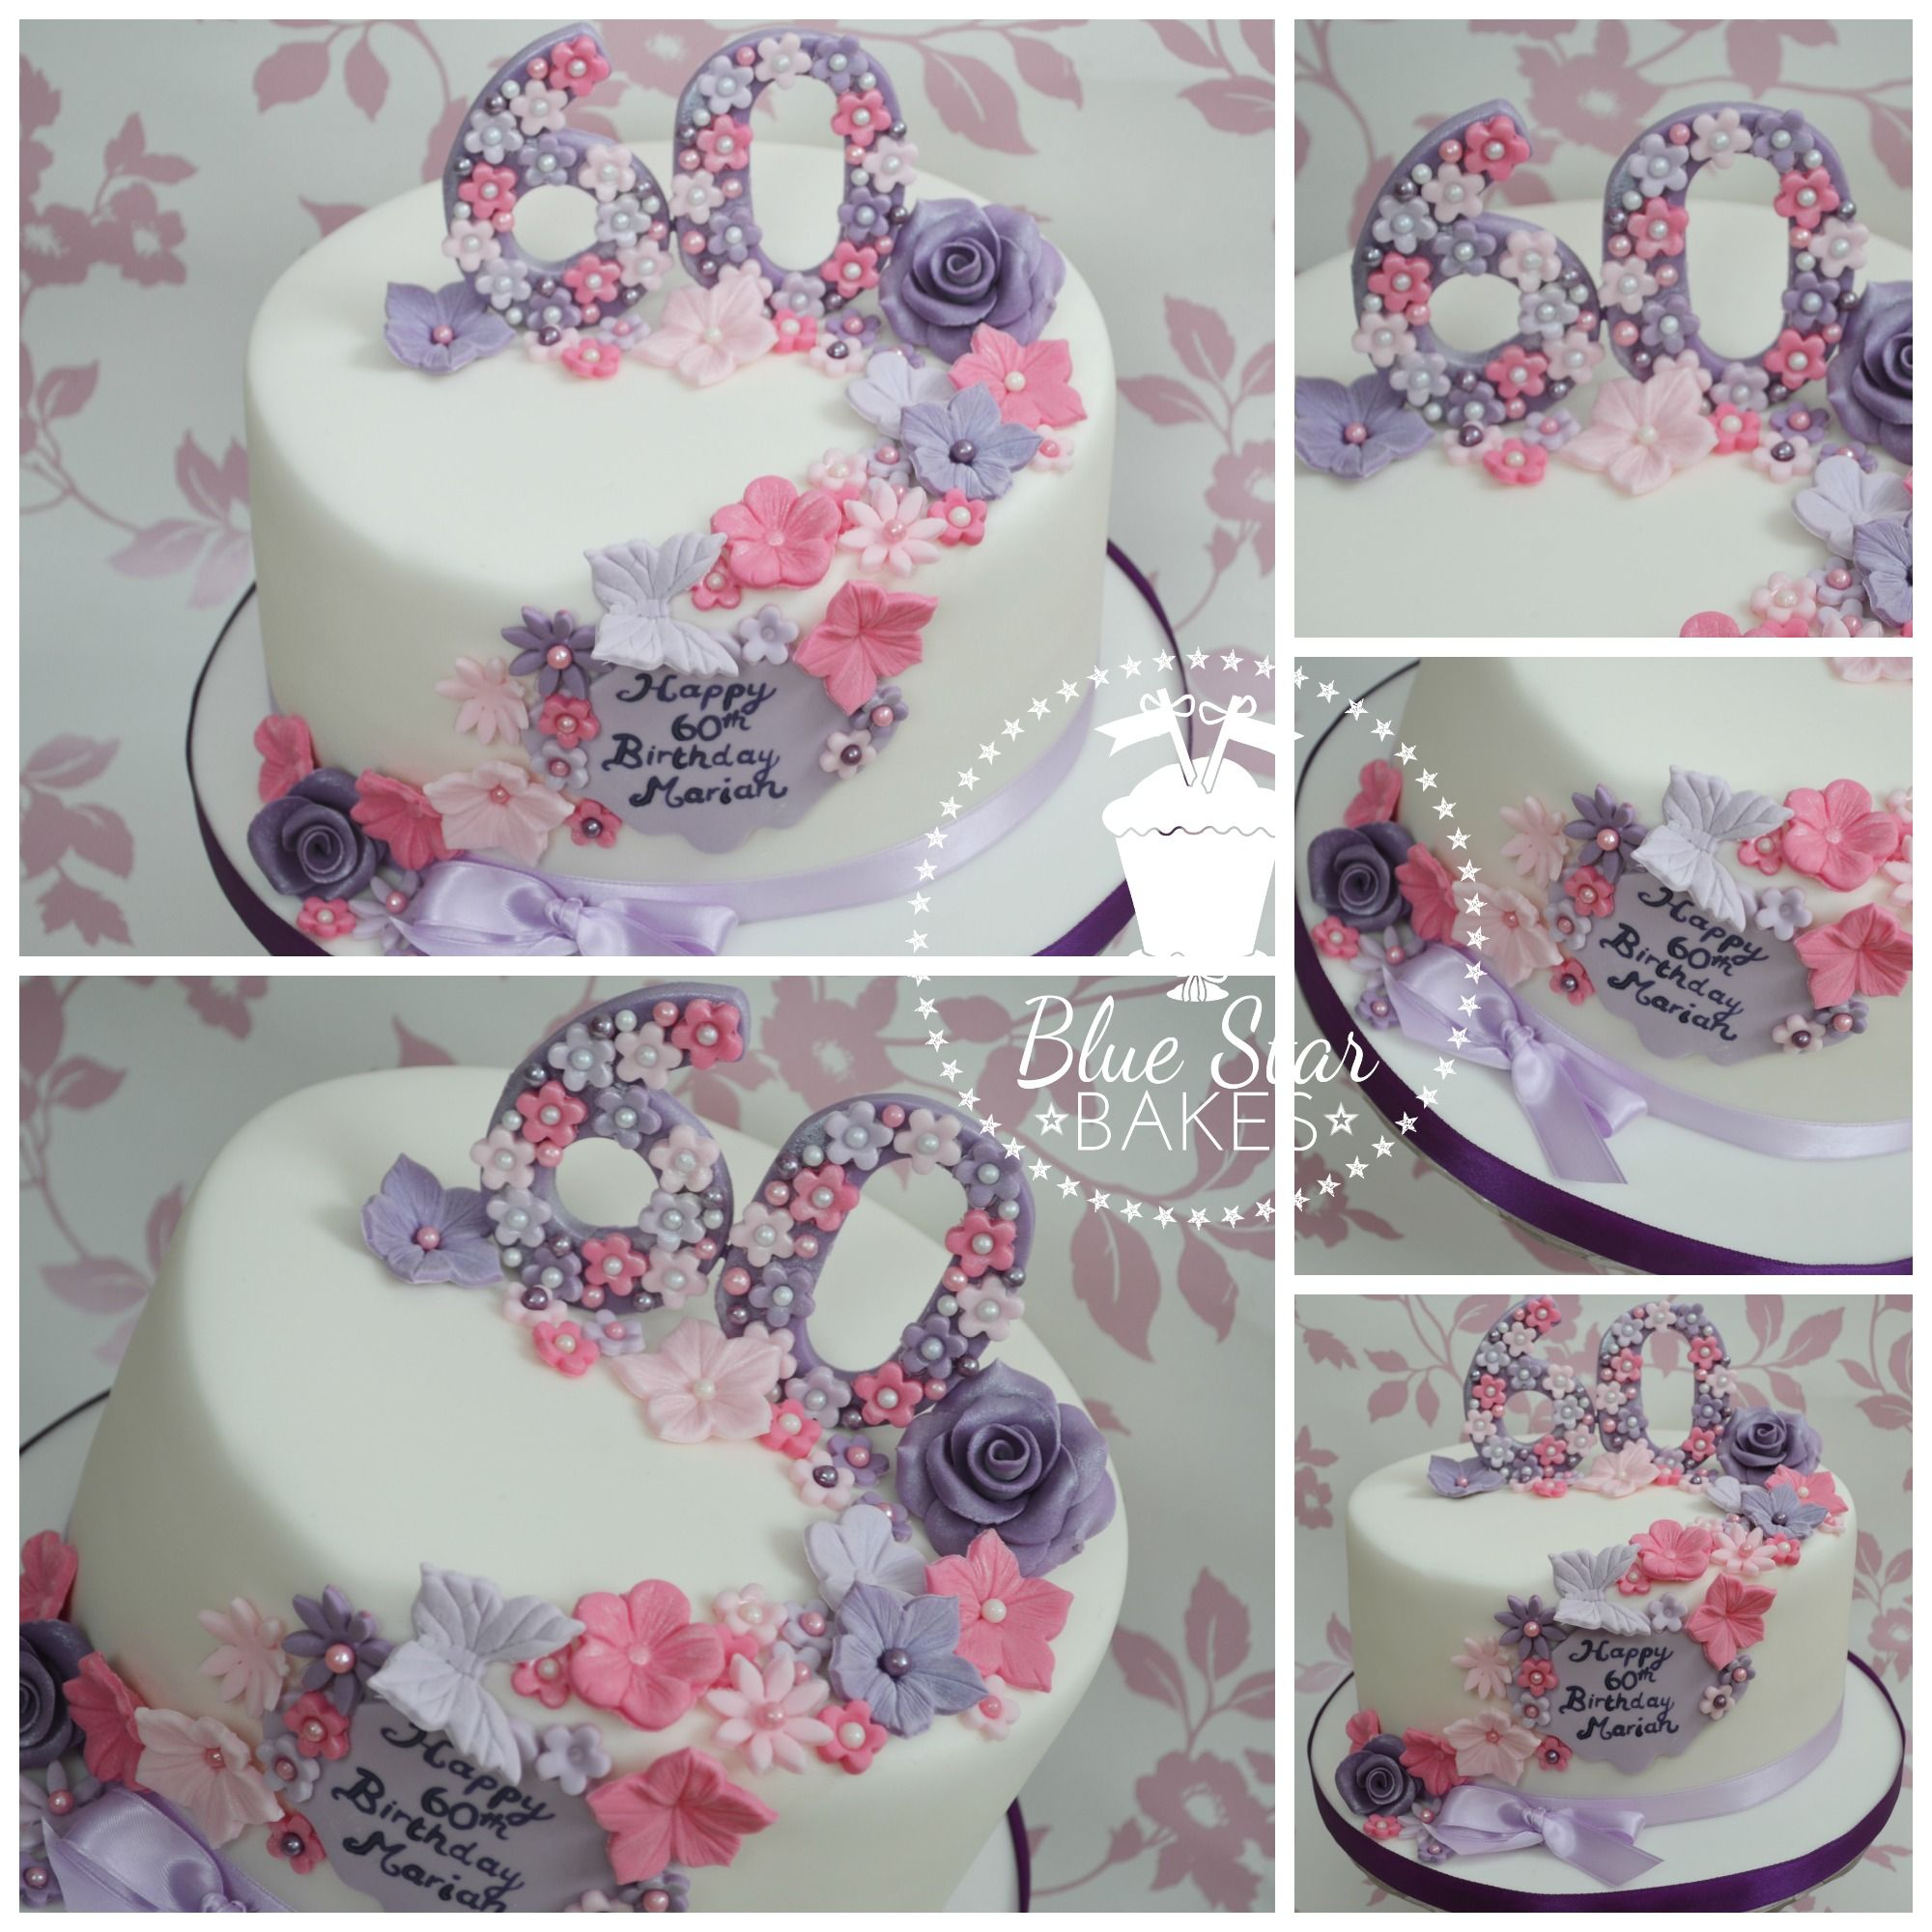 60th Birthday Cake Lady Girl Pretty Flowers Pink Purple Lilac Bows